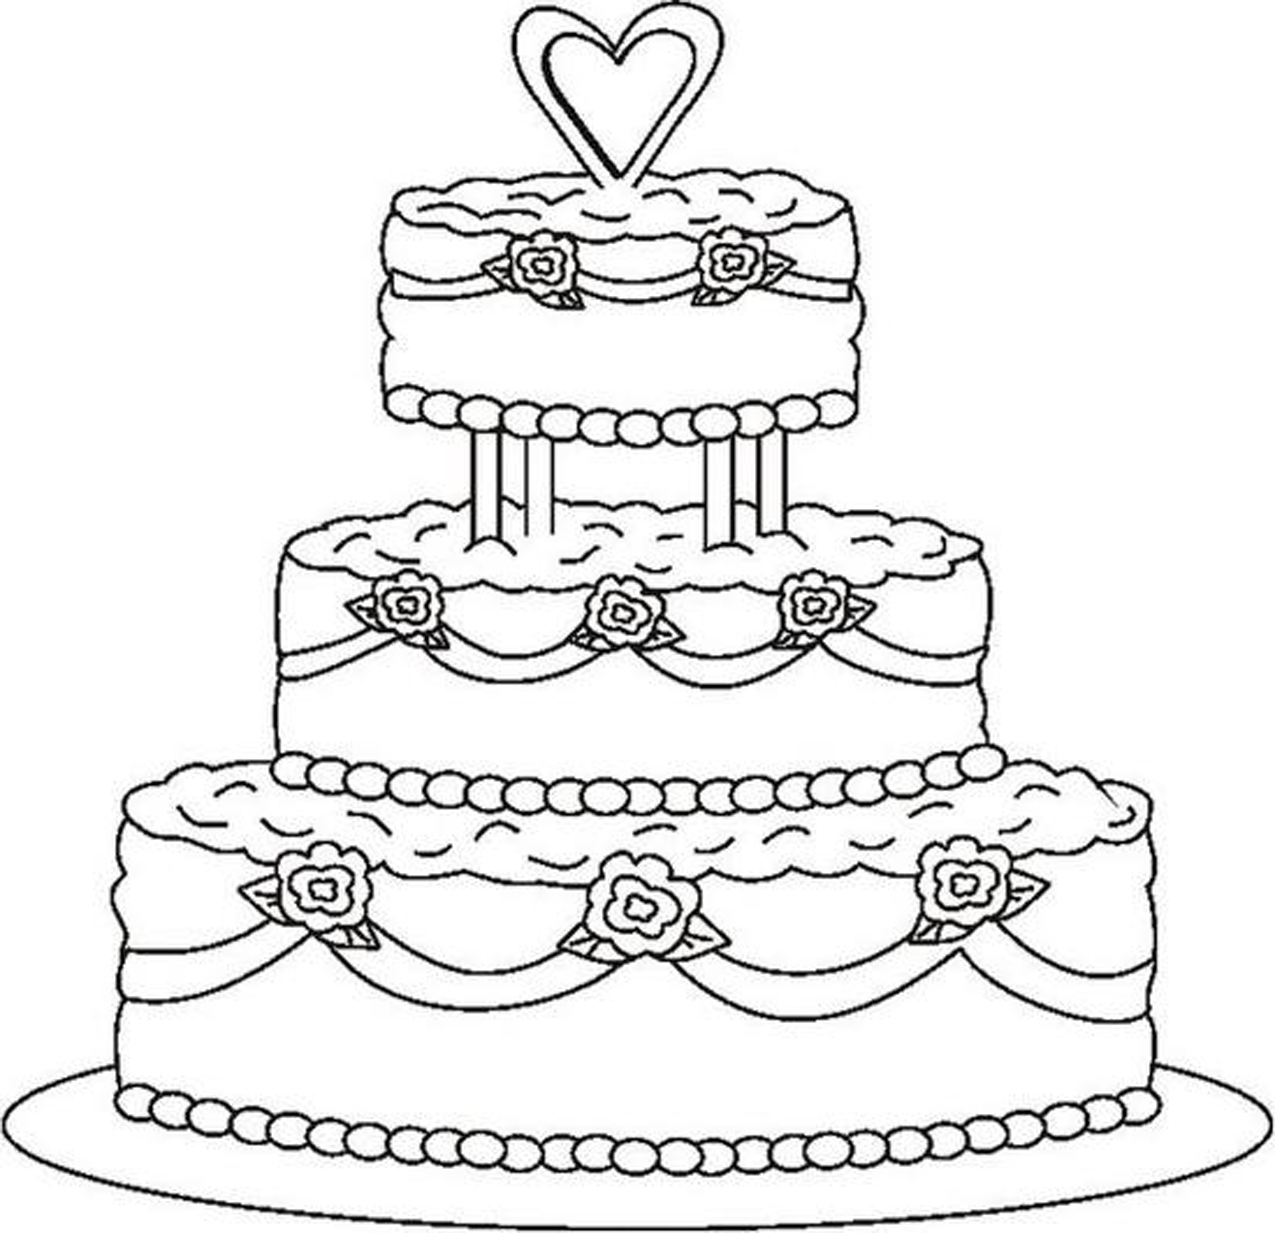 cake food coloring pages - photo#40